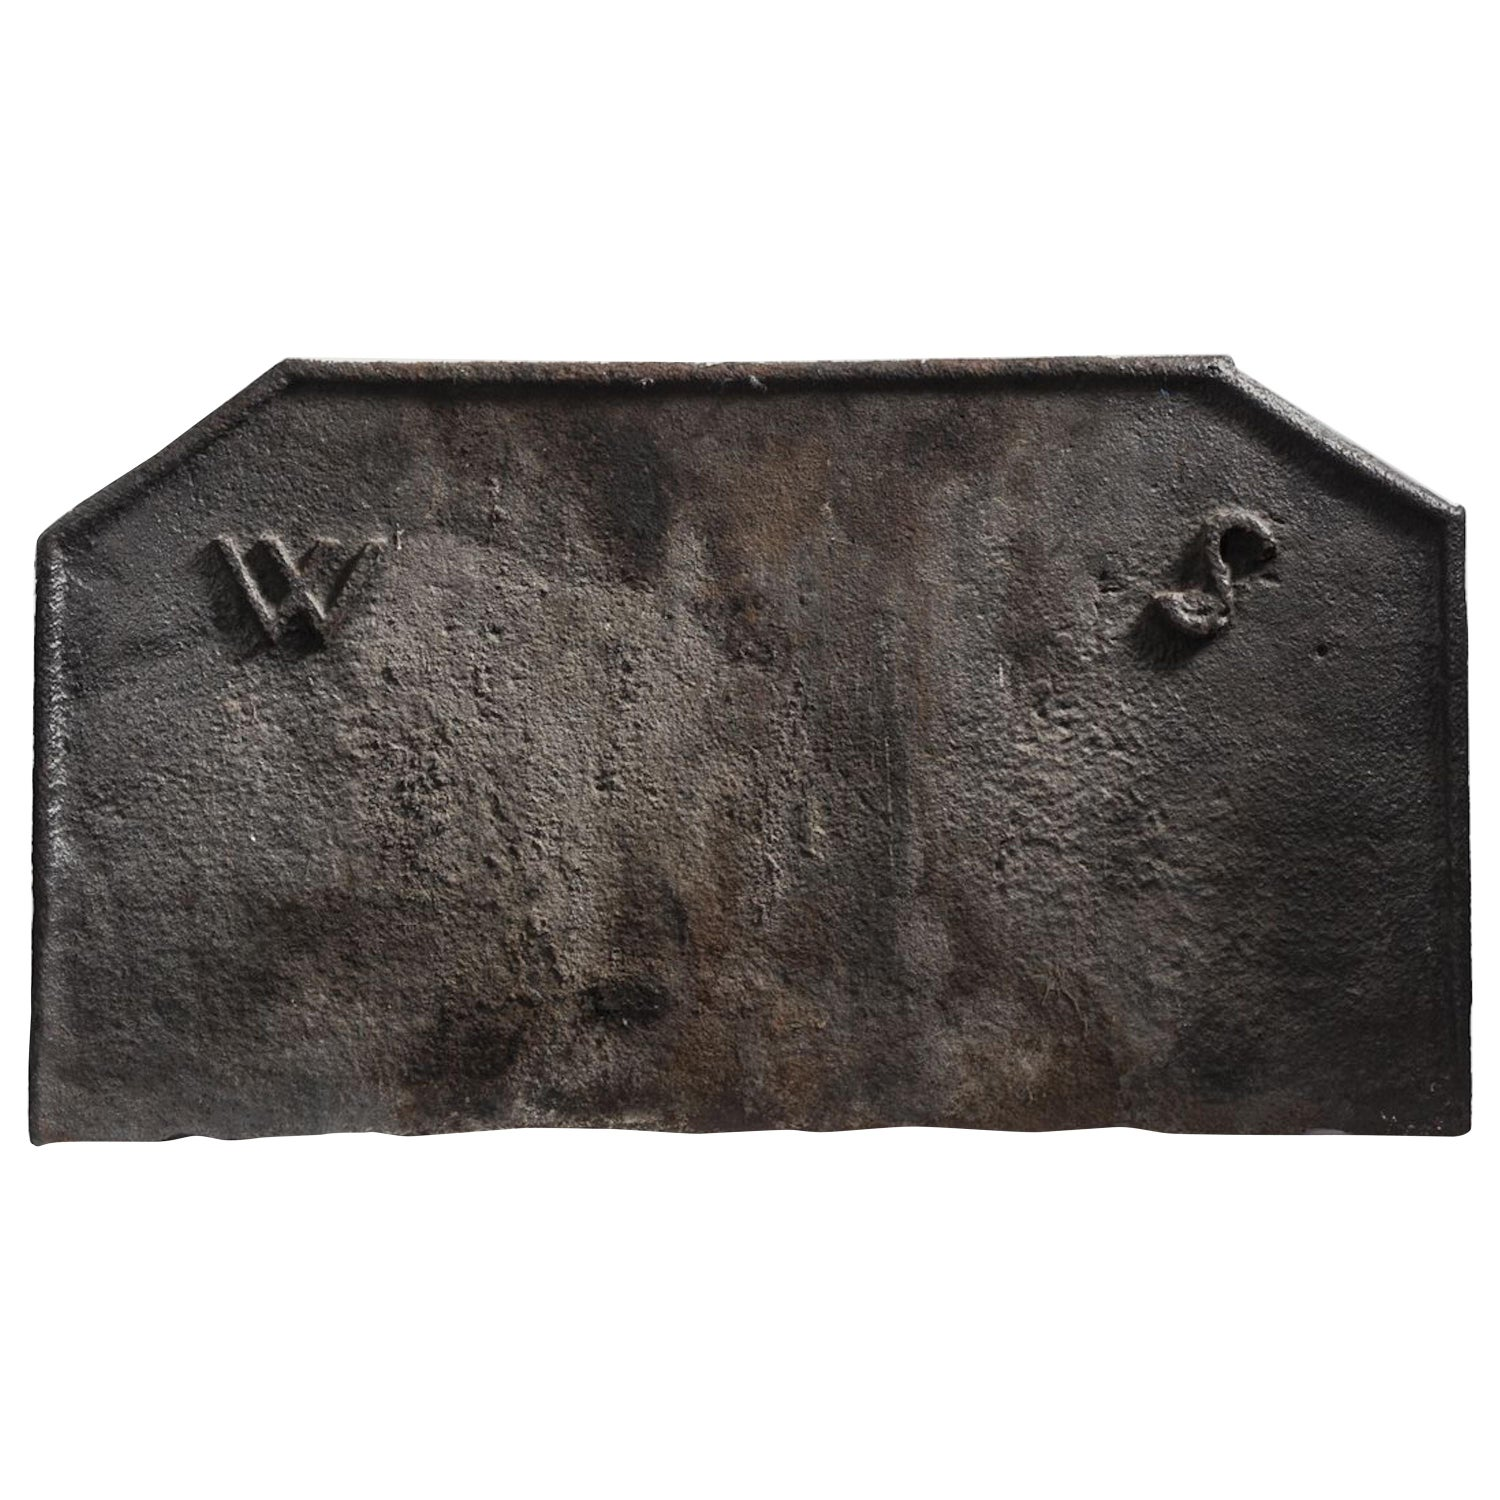 Fireback, Cast Iron, 17th Century, English, Bearing the Initials W S